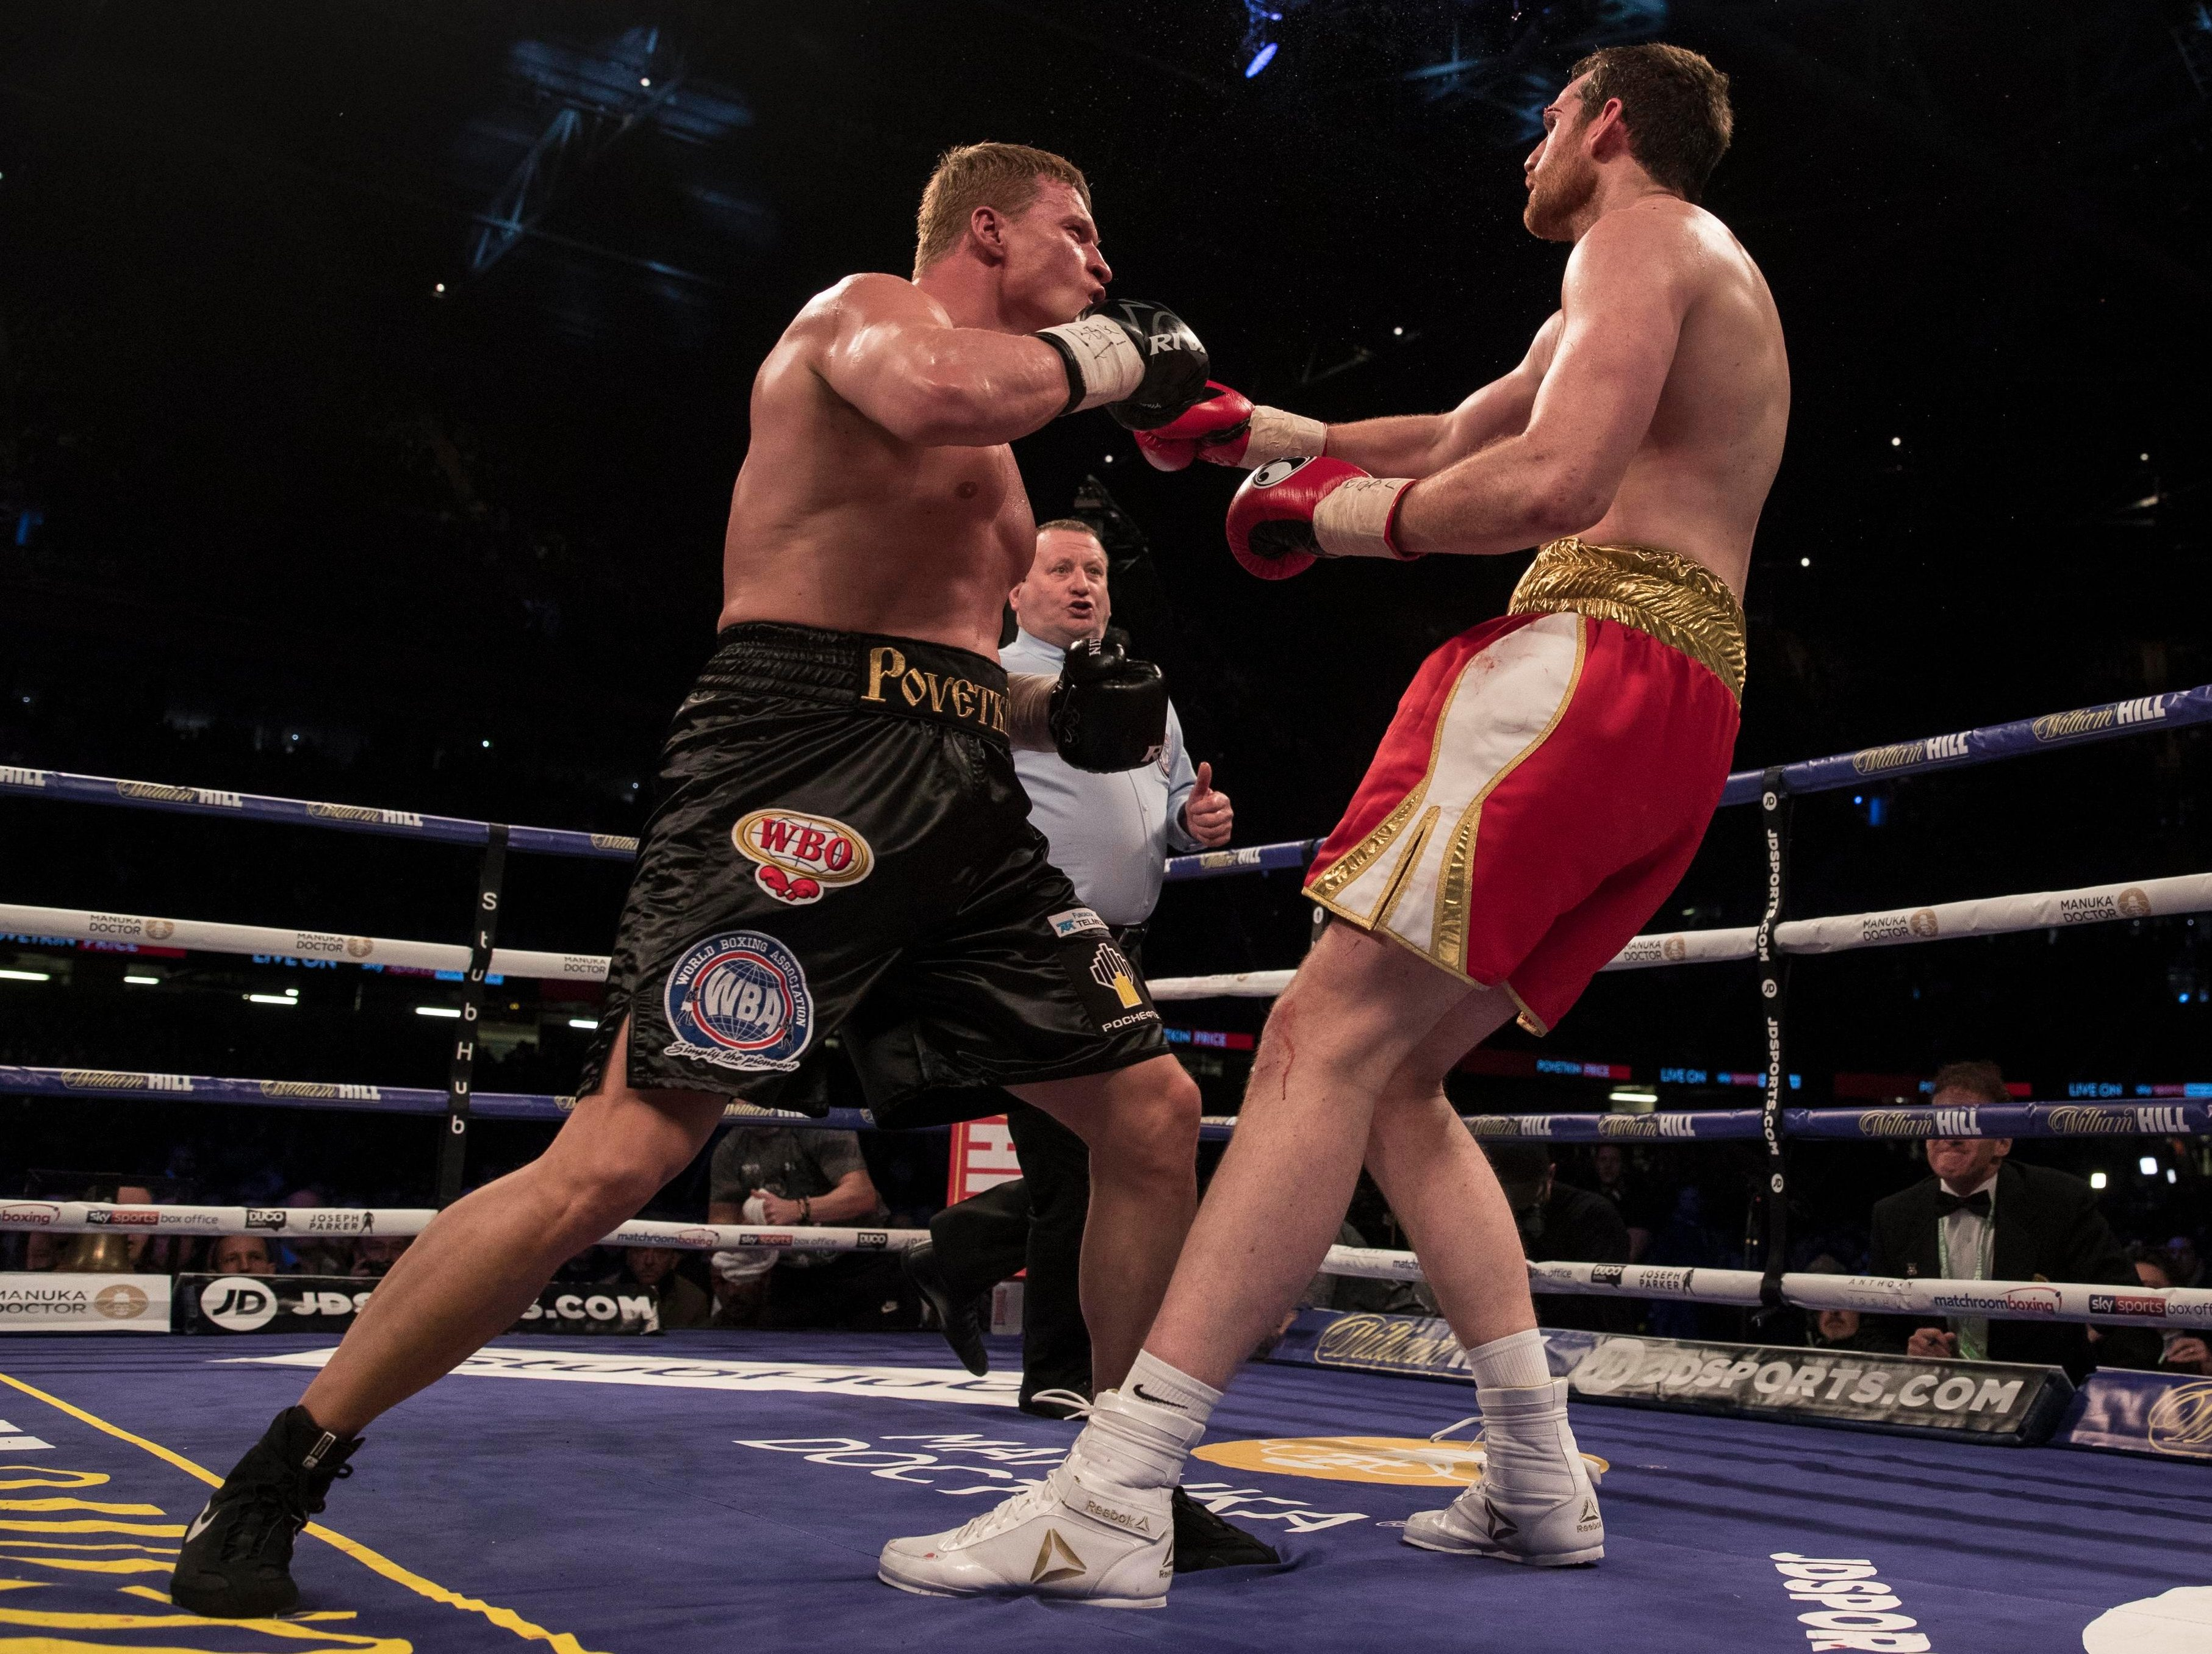 The WBA threatened to strip Joshua of their title if he didn't fight mandatory challenger Povetkin, left